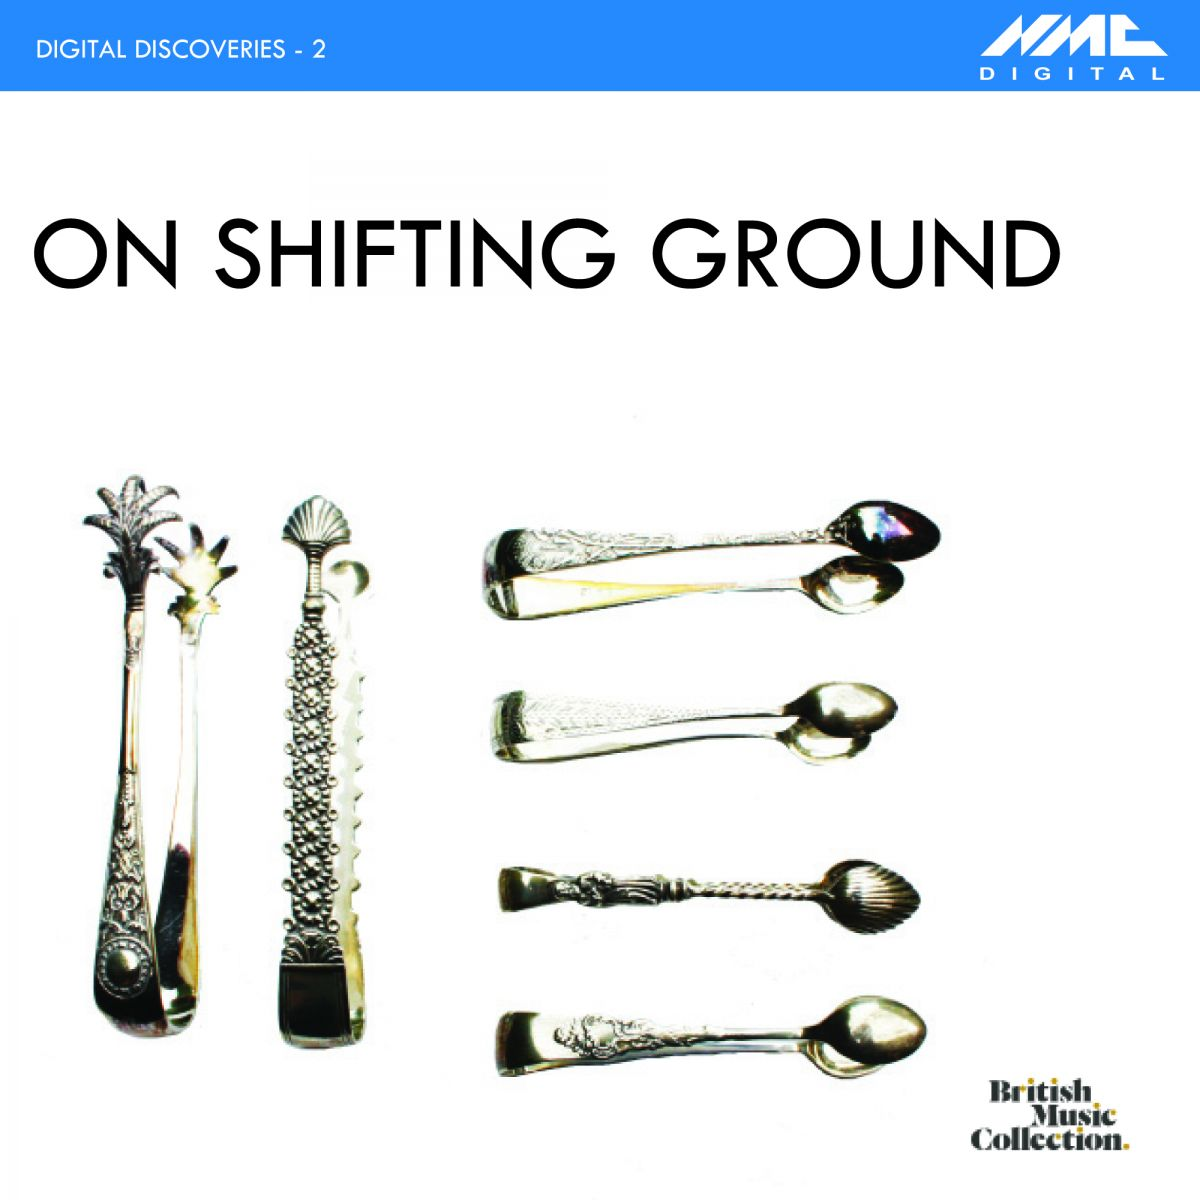 NMC DL3002_OnShiftingGround